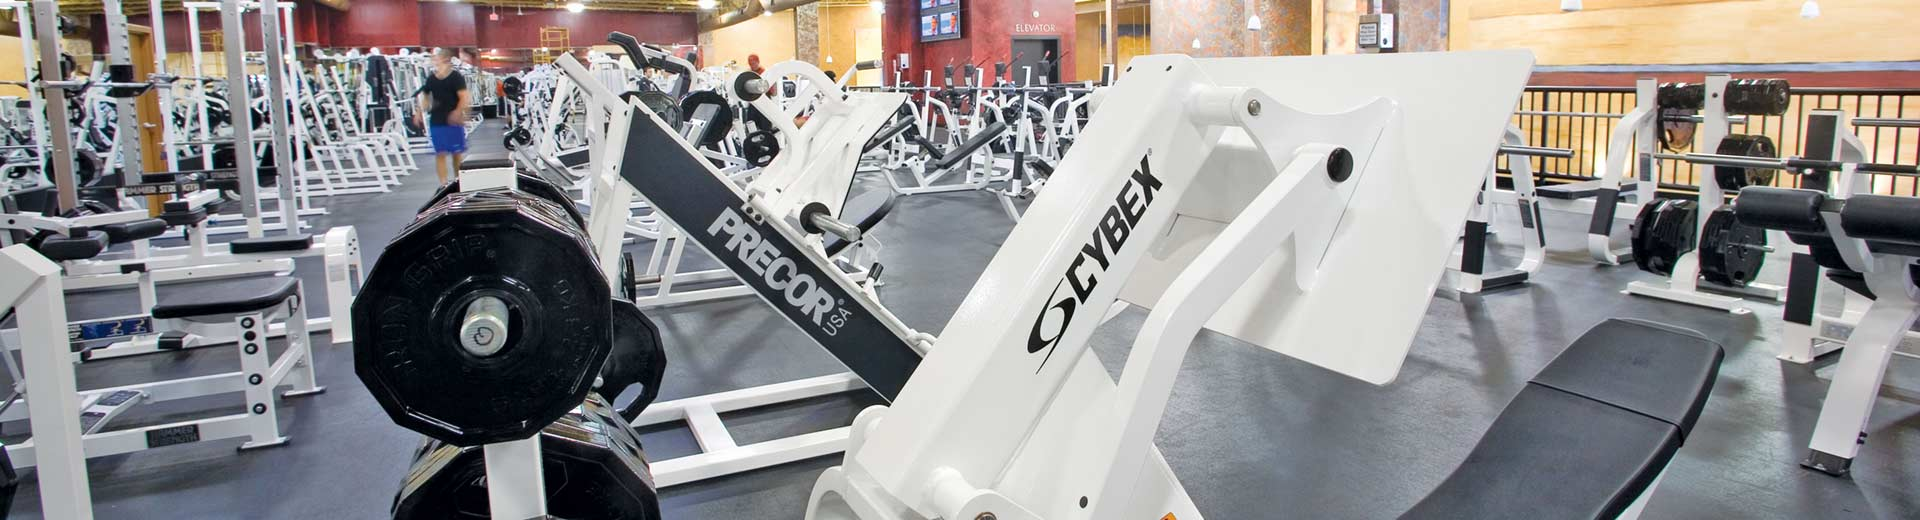 downers grove, il gym amenities | xsport fitness